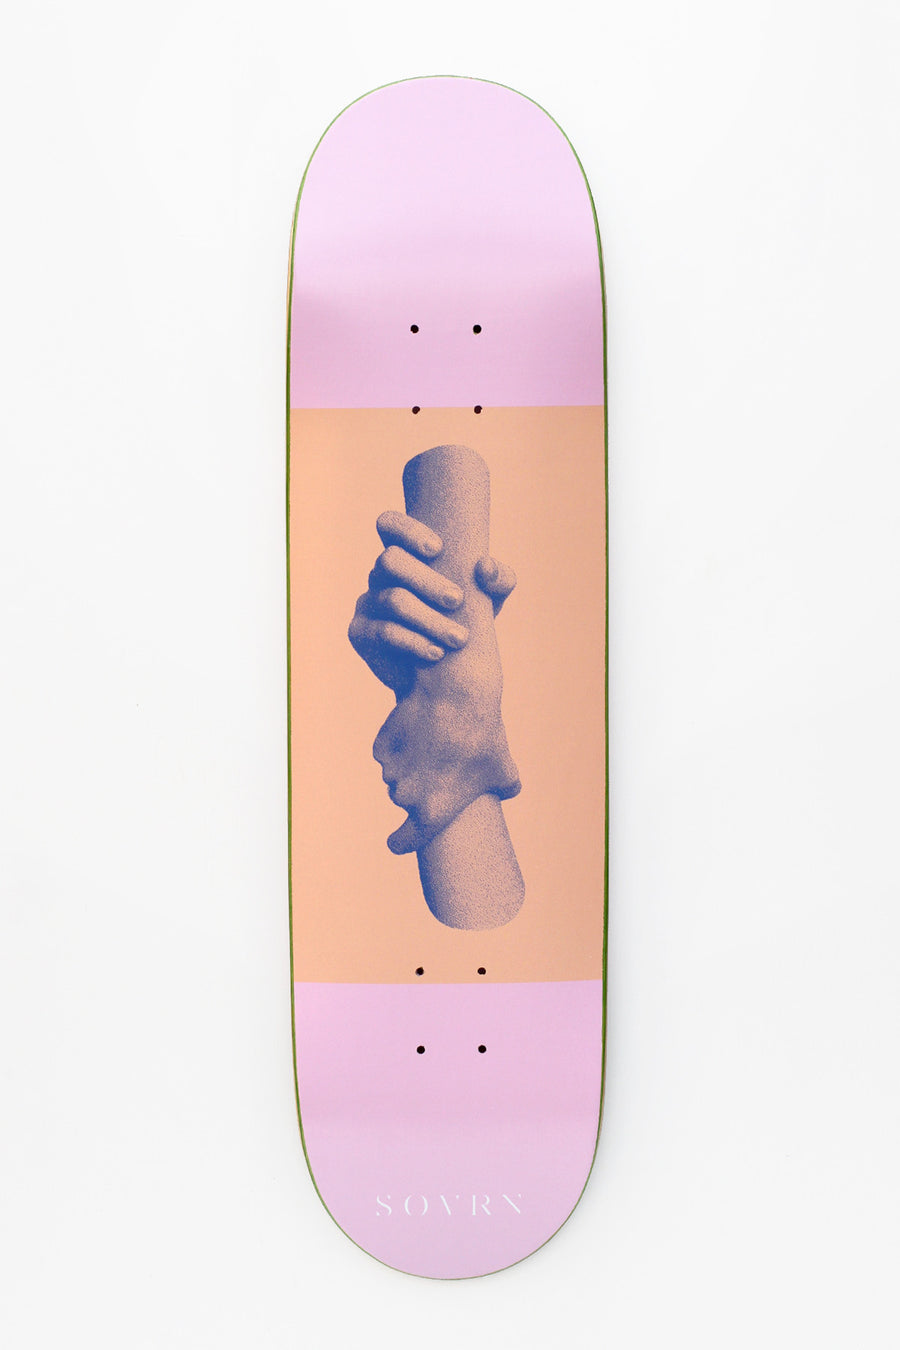 Hand in Hand | Deck - SOVRN